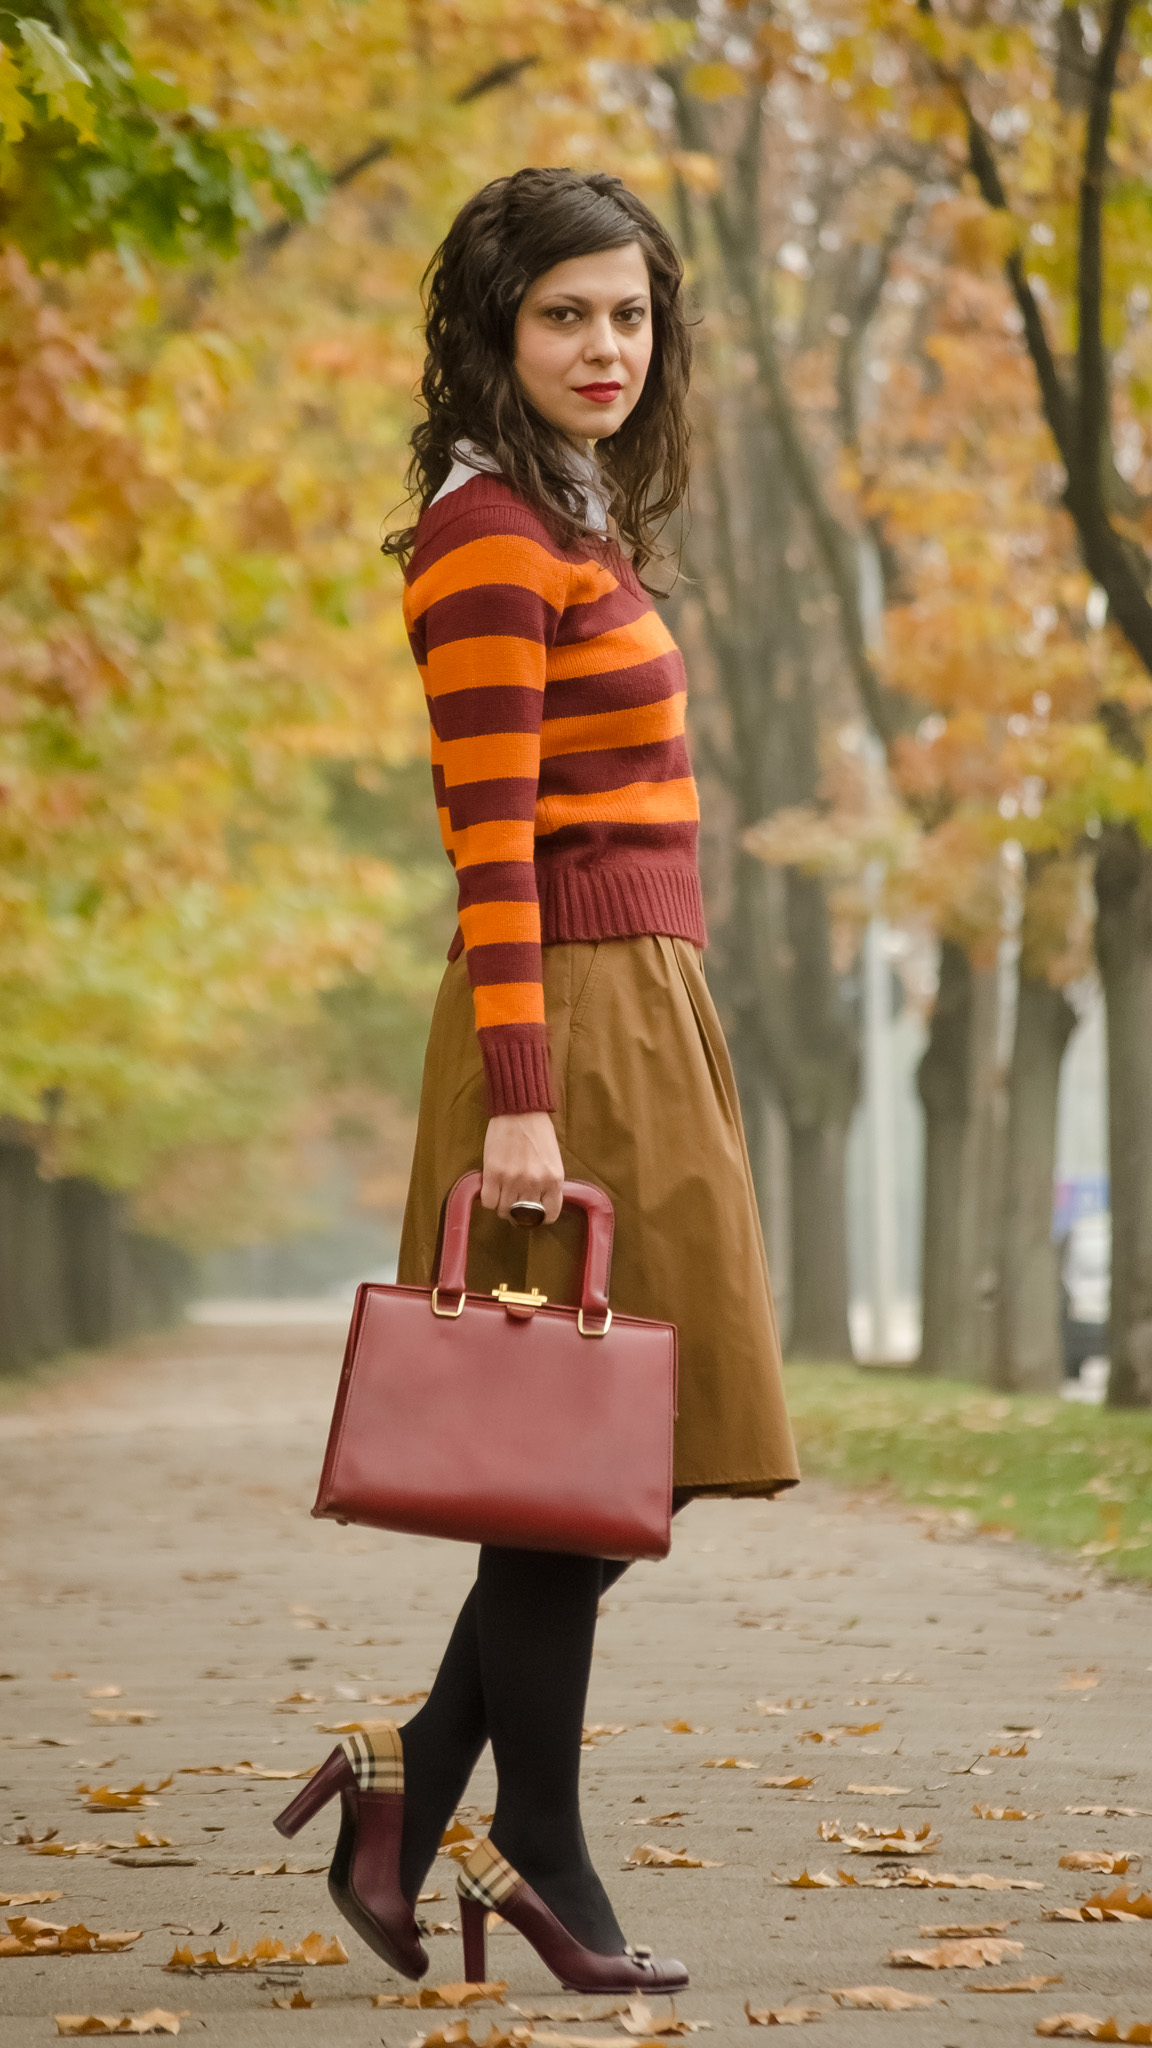 harry potter fall outfit brown skirt burgundy orange sweater shoes heels  bag autumn scenery fallen leaves 06ce1e0c1